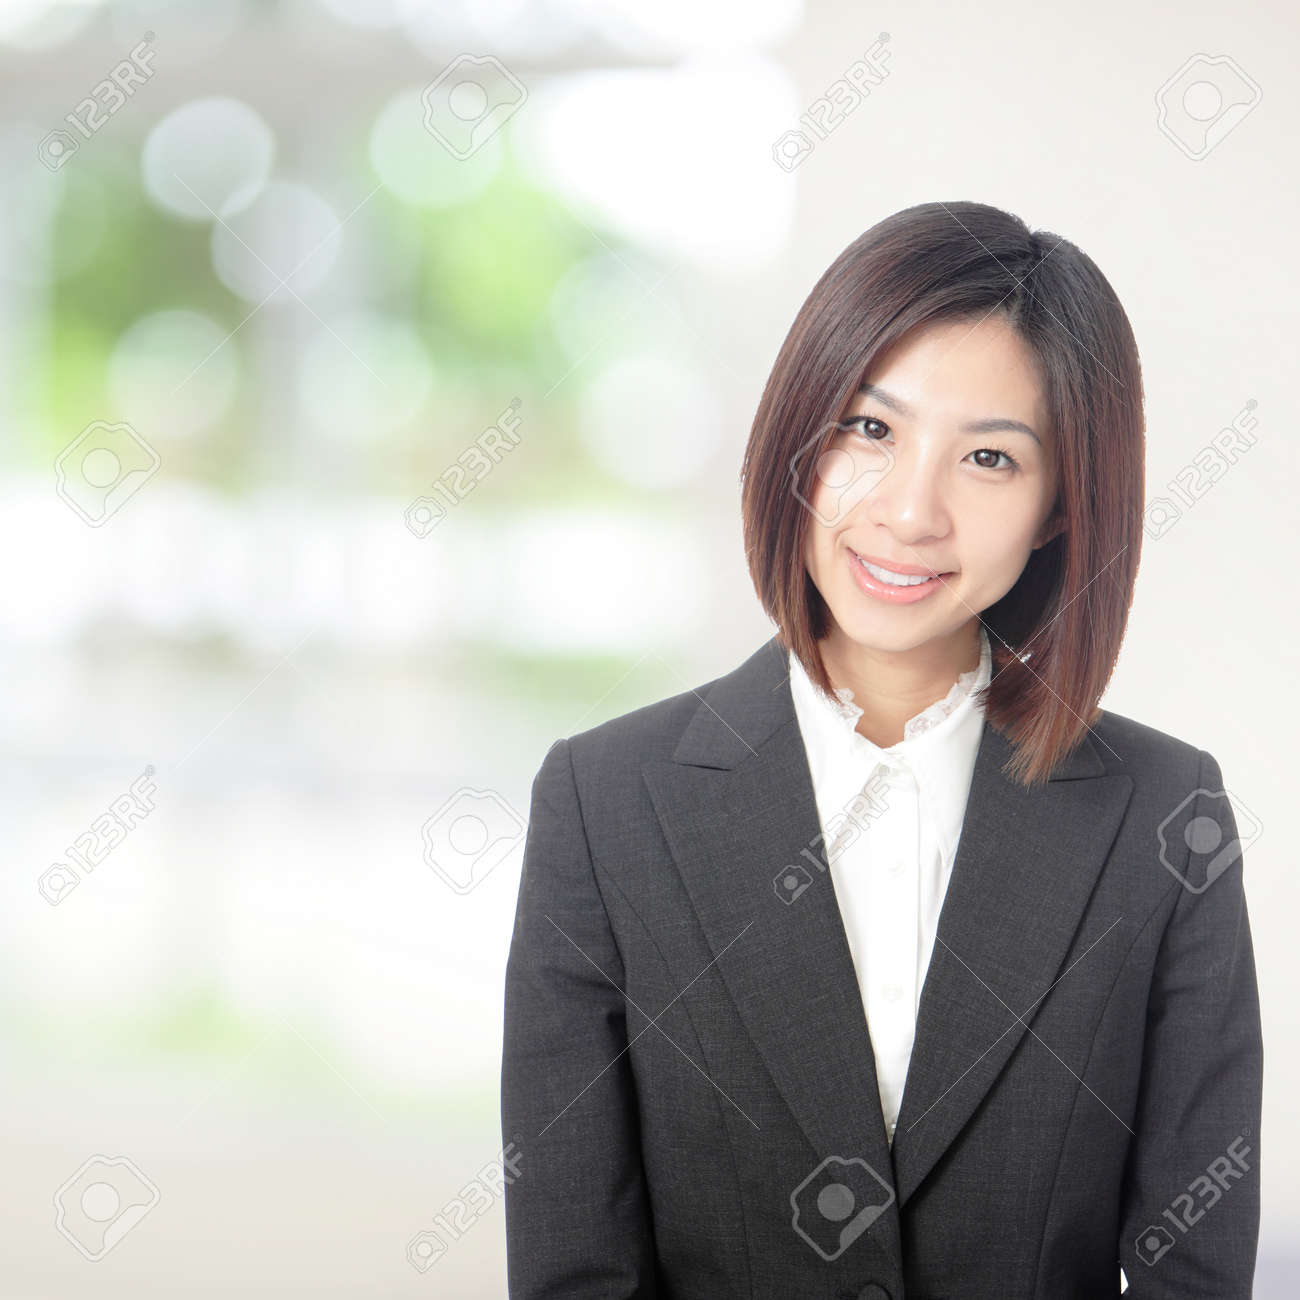 Young beautiful business woman smile portrait with nature green background, model is a asian beauty Stock Photo - 14101169